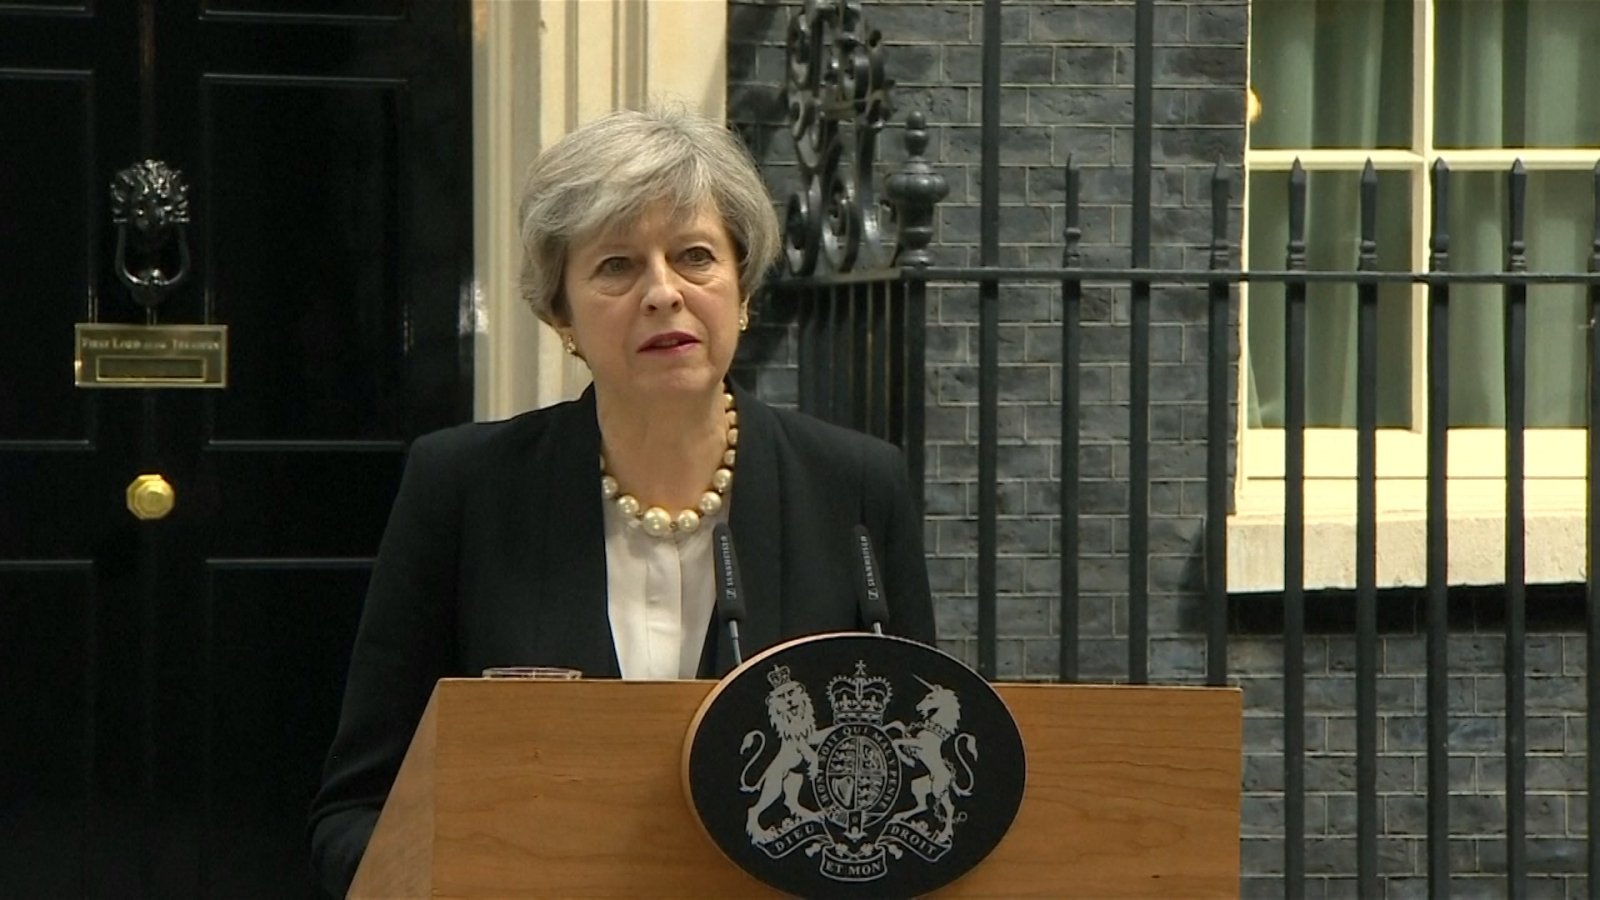 UK Prime Minister Theresa May condemns 'callous terrorist attack' in Manchester